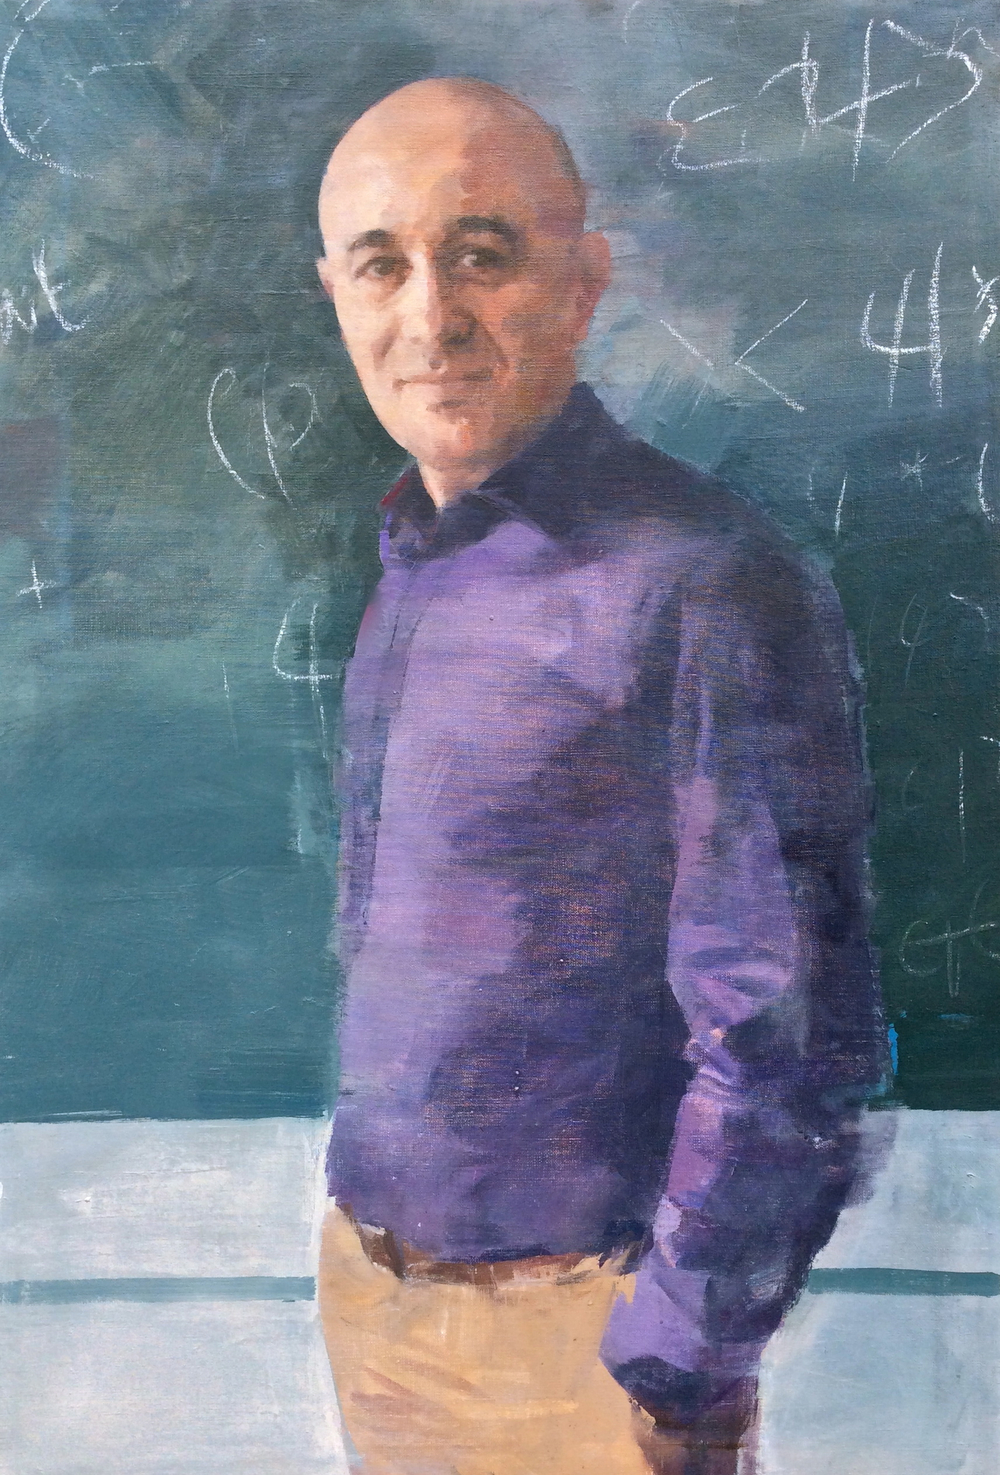 Professor Jim Al-Khalili for the British Humanist Association